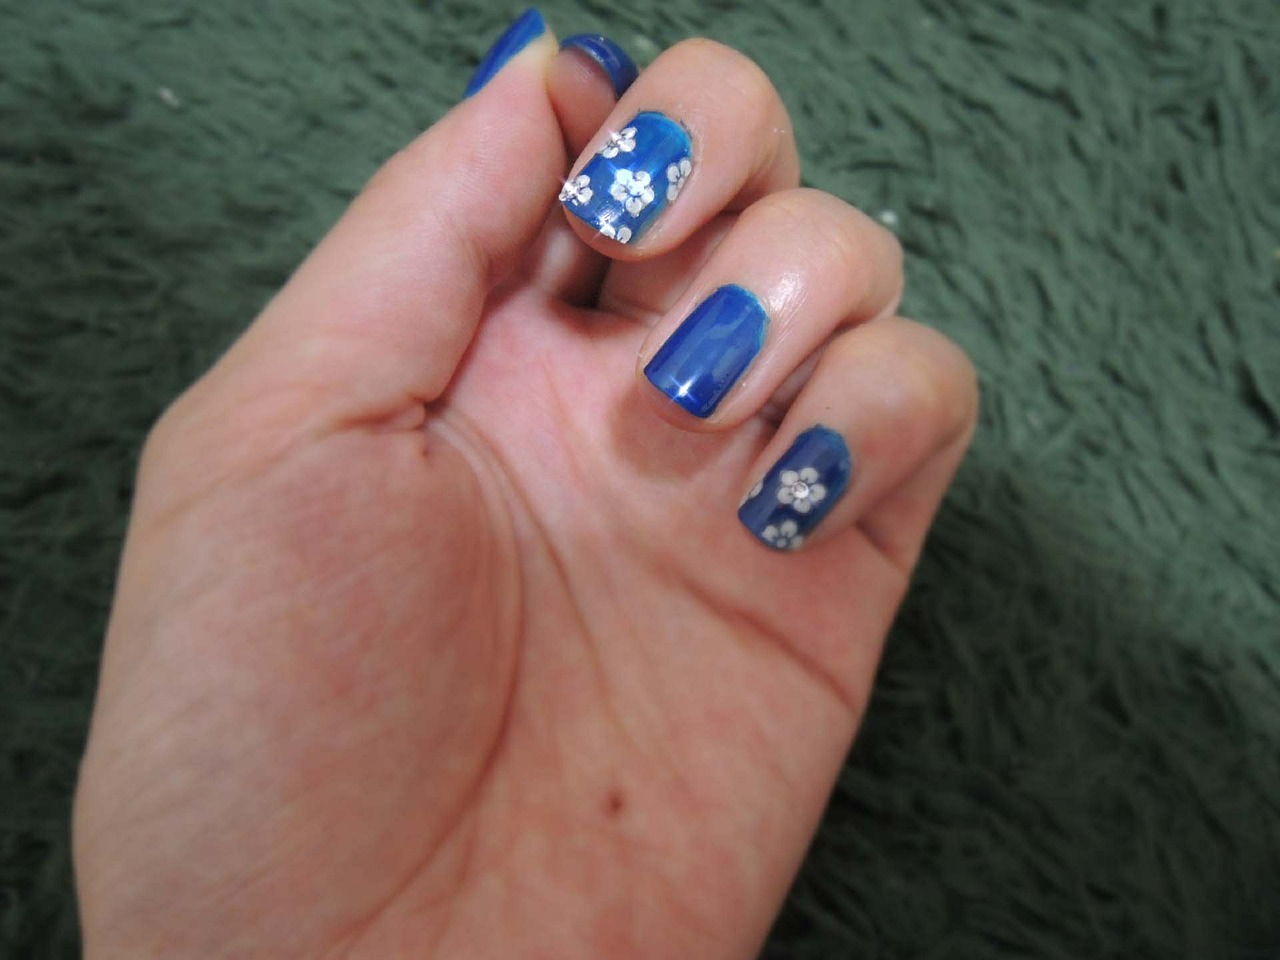 Nail Designs Top 10 Easy Pretty Designs For Short And Long Nails